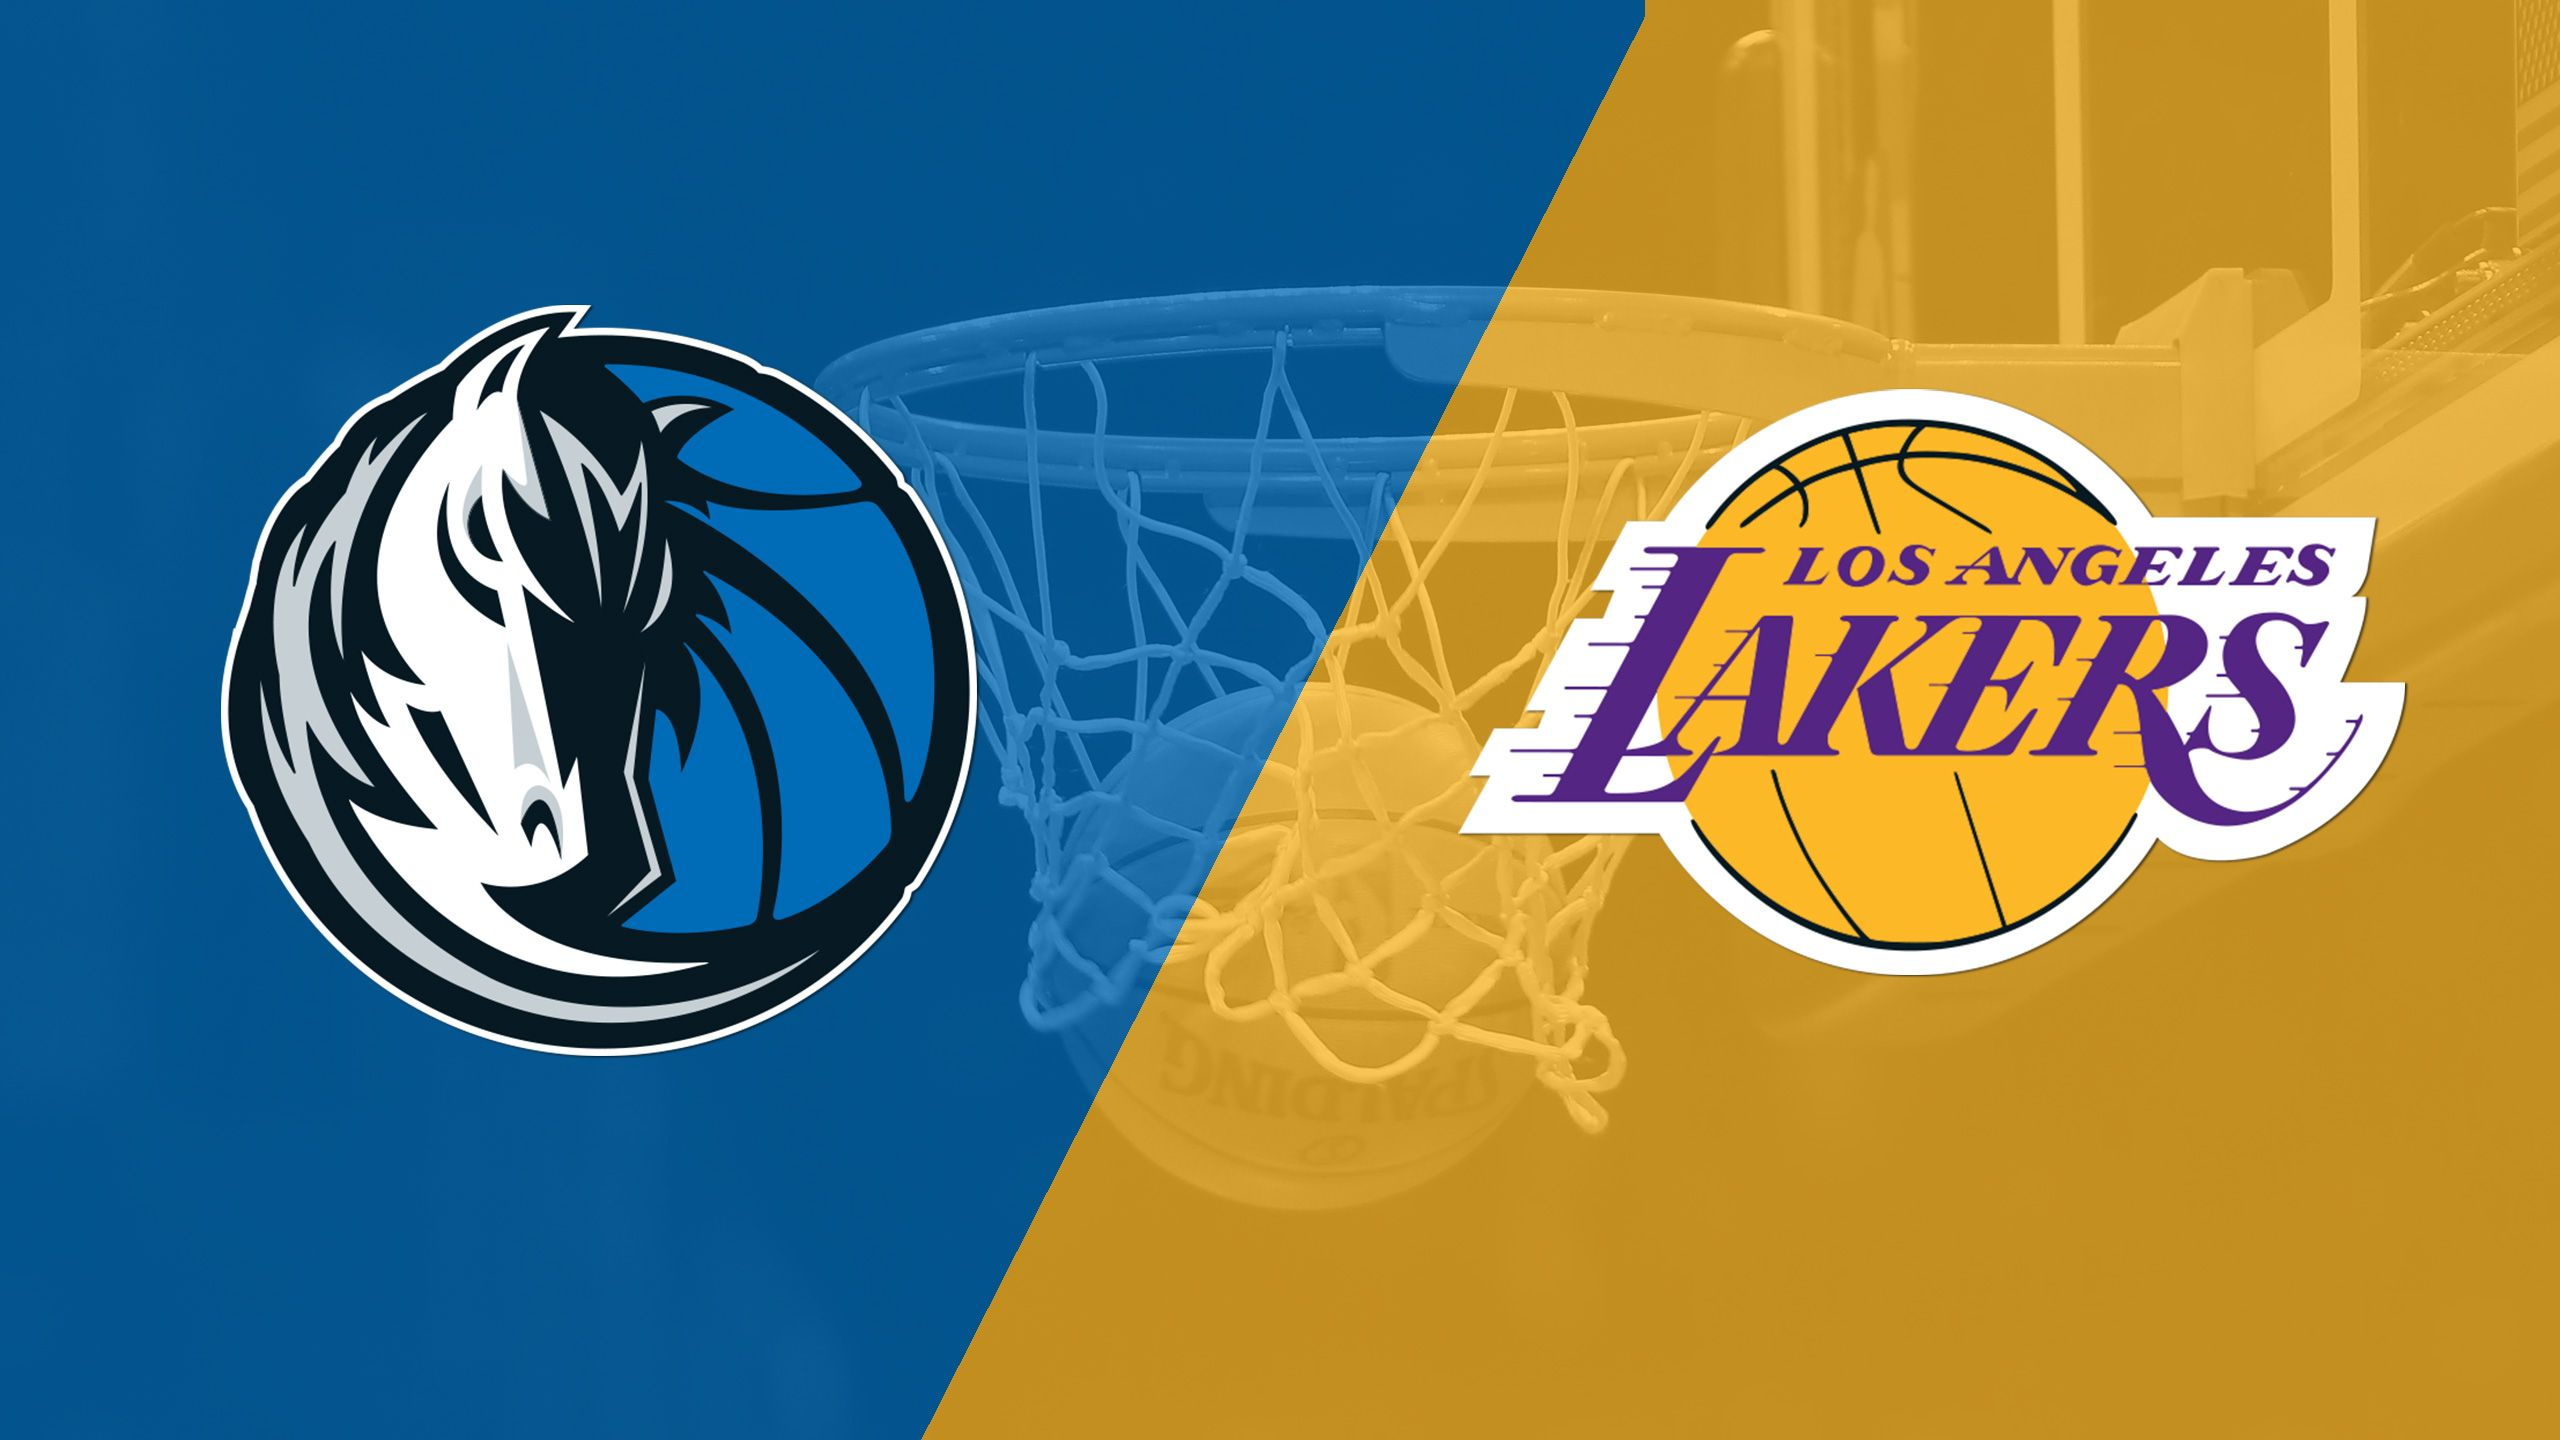 In Spanish - Dallas Mavericks vs. Los Angeles Lakers